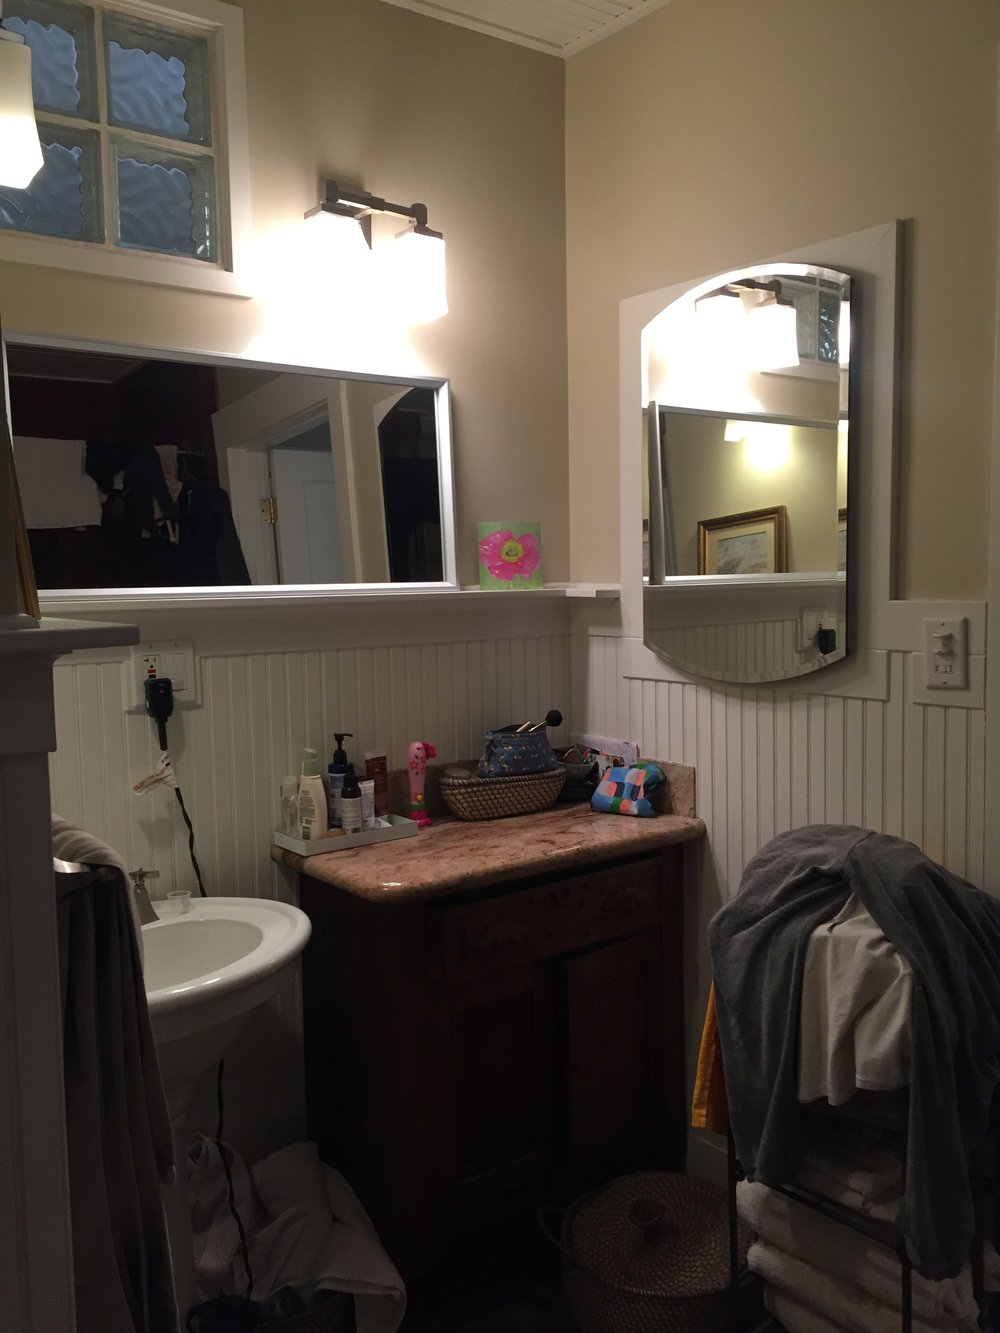 BEFORE BATH VANITY.jpg